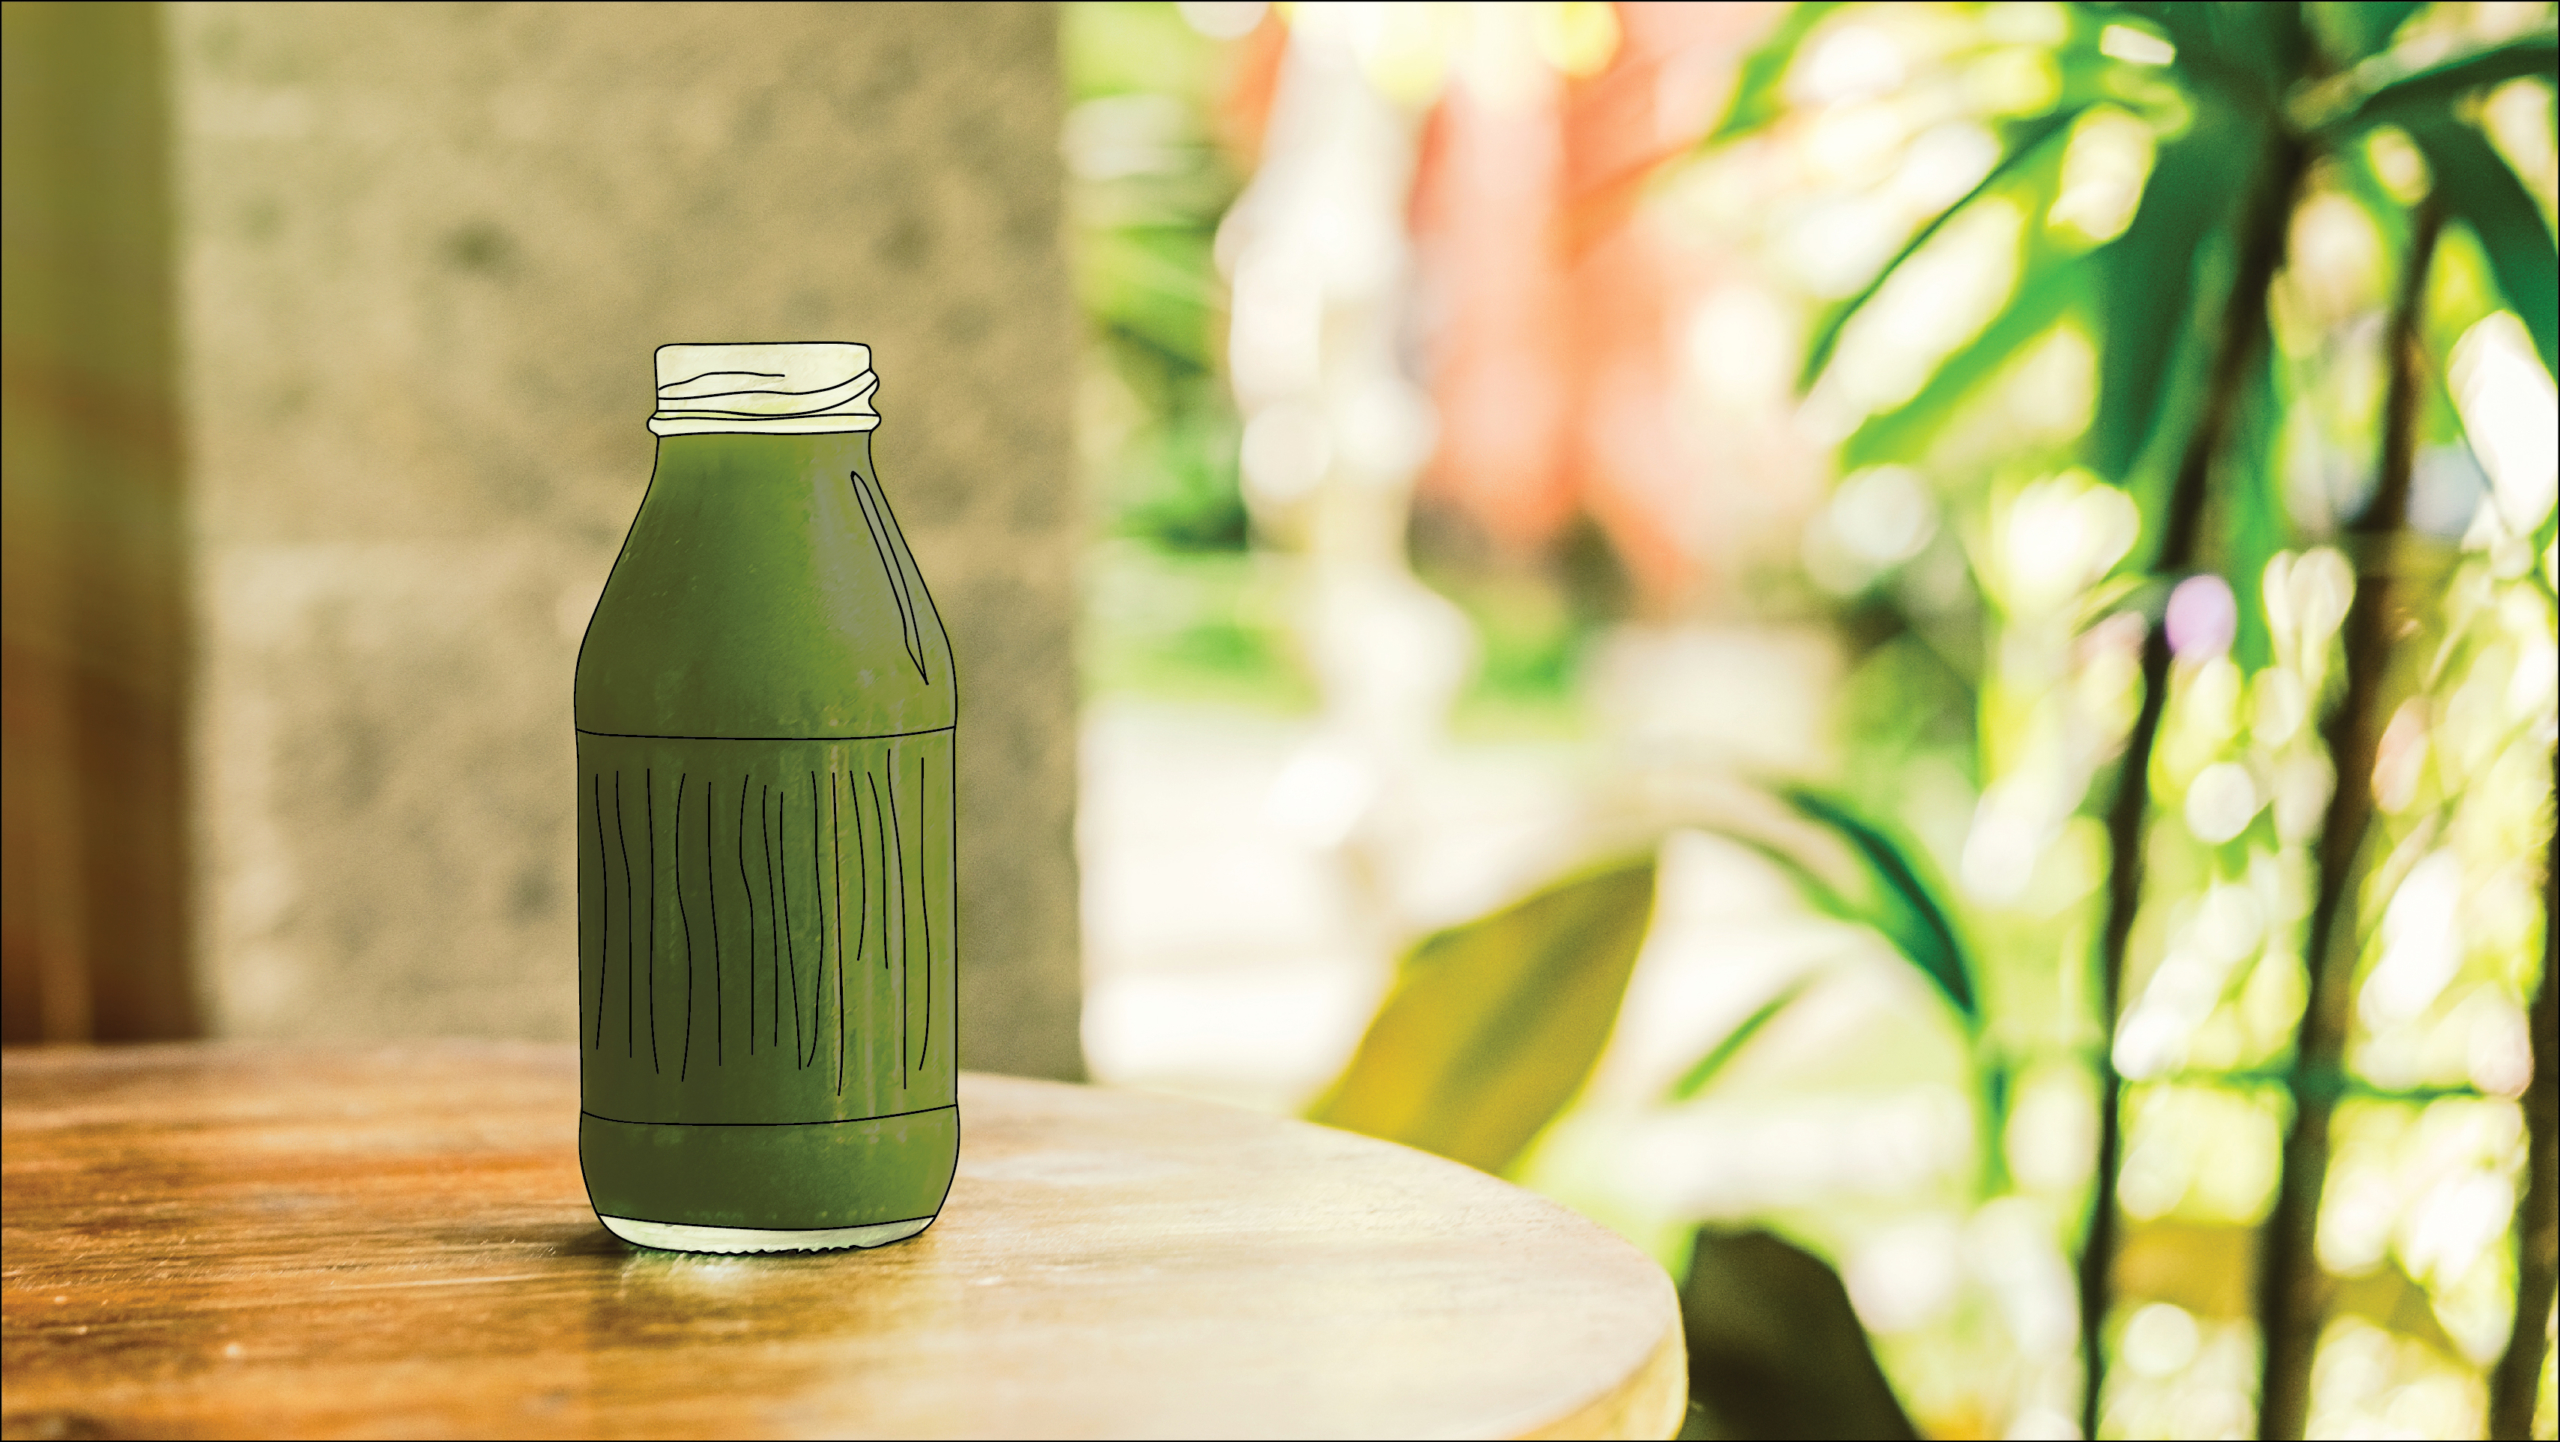 A table with one bottle of green vegetable juice